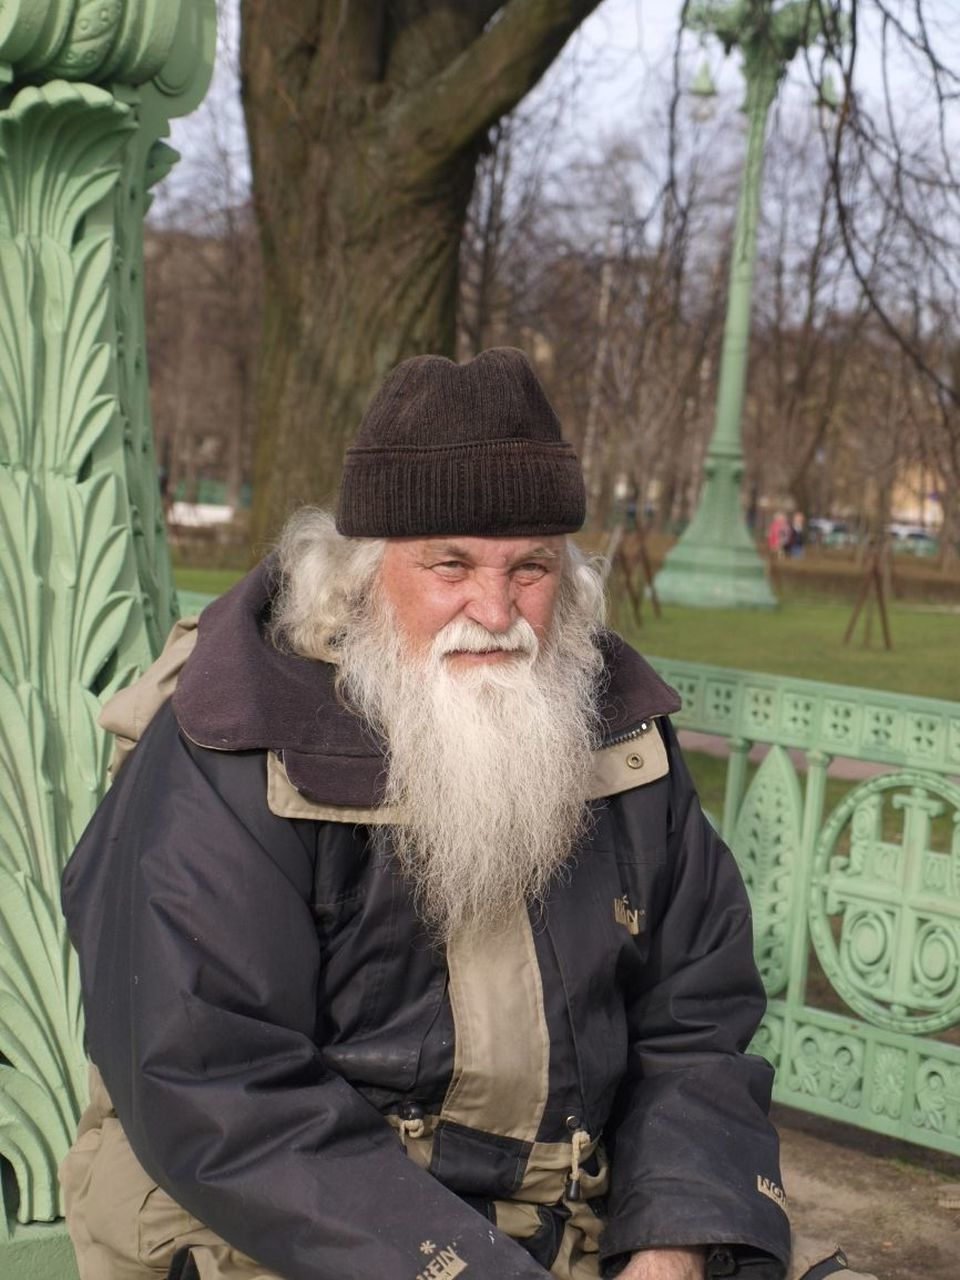 beard, senior adult, front view, one person, real people, jacket, outdoors, mustache, senior men, looking at camera, warm clothing, smiling, portrait, happiness, standing, day, only men, adult, adults only, people